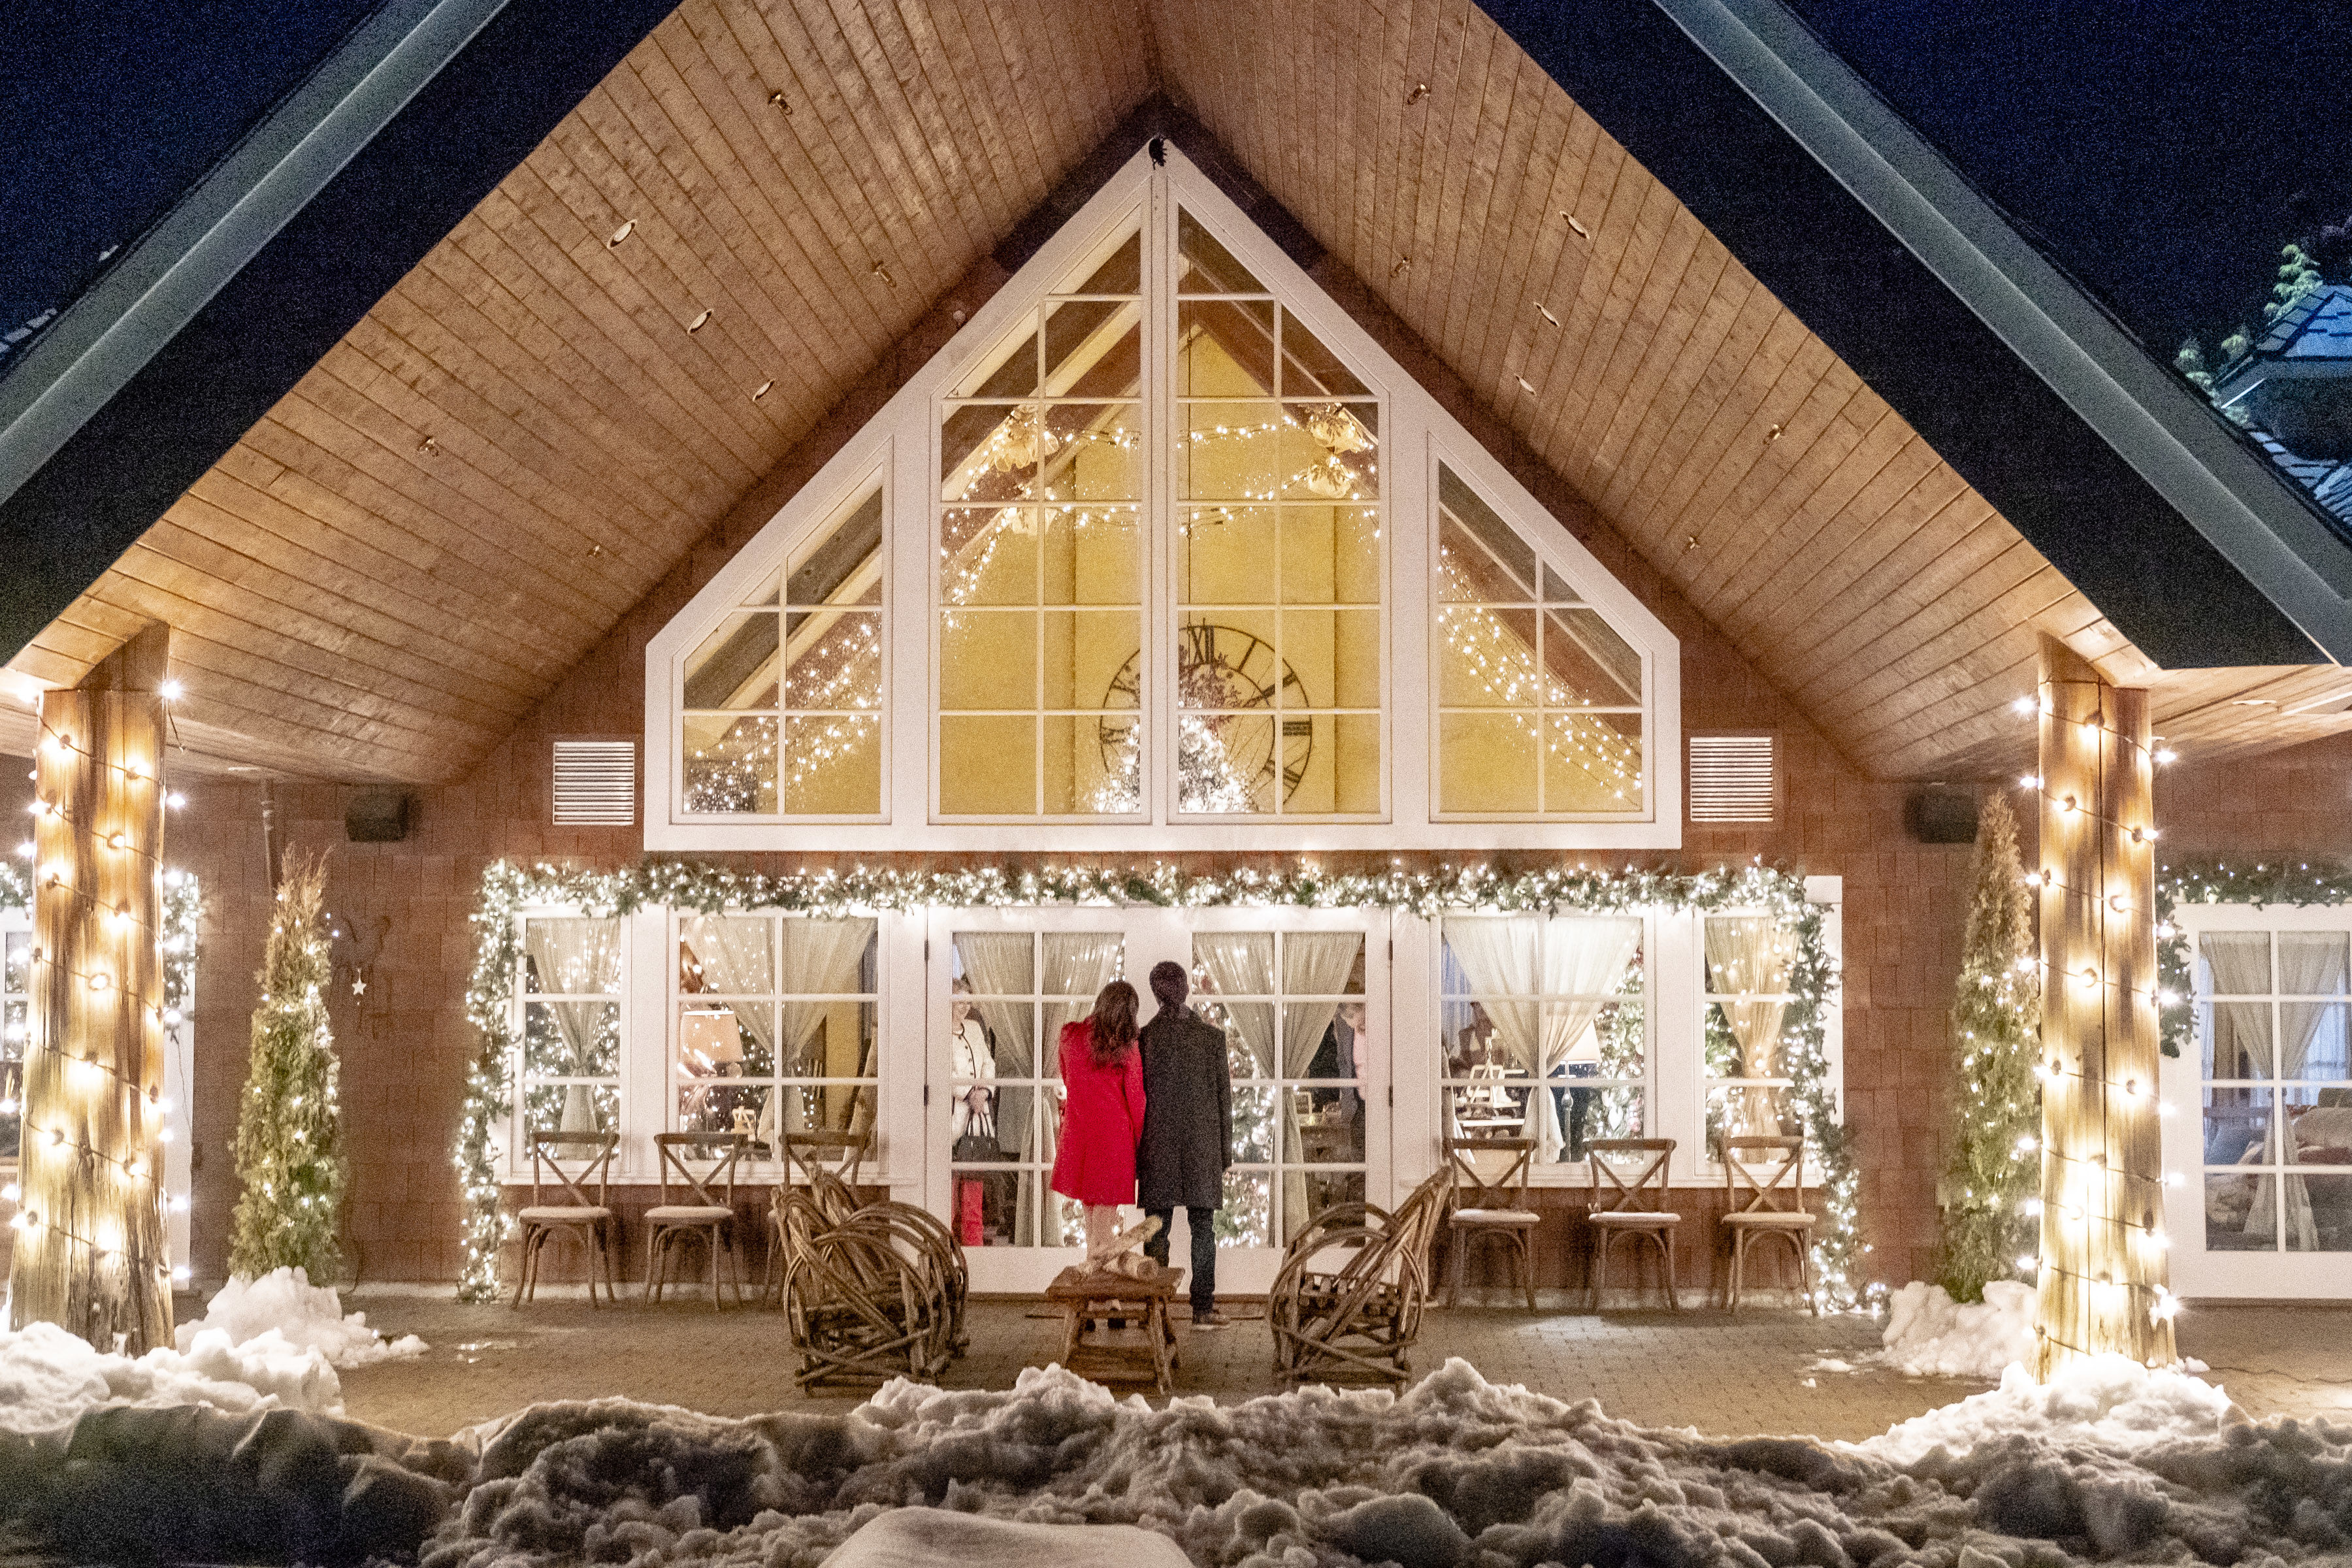 Hallmark Wants to Transform One Lucky Fan's House into a Christmas Wonderland